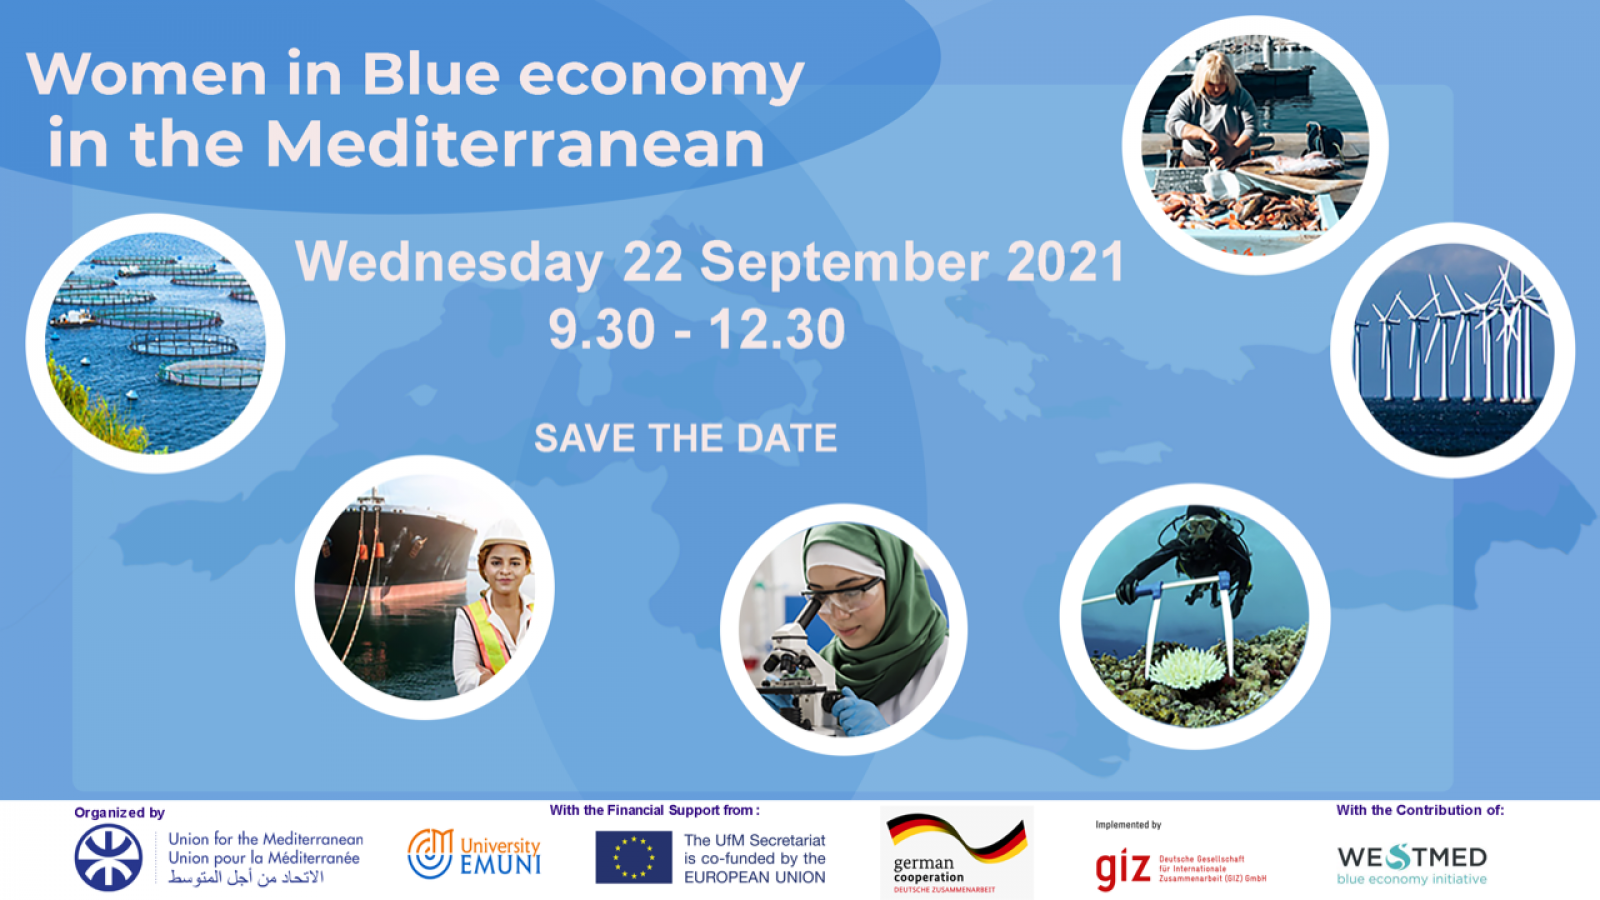 women in blue economy 2021 event poster